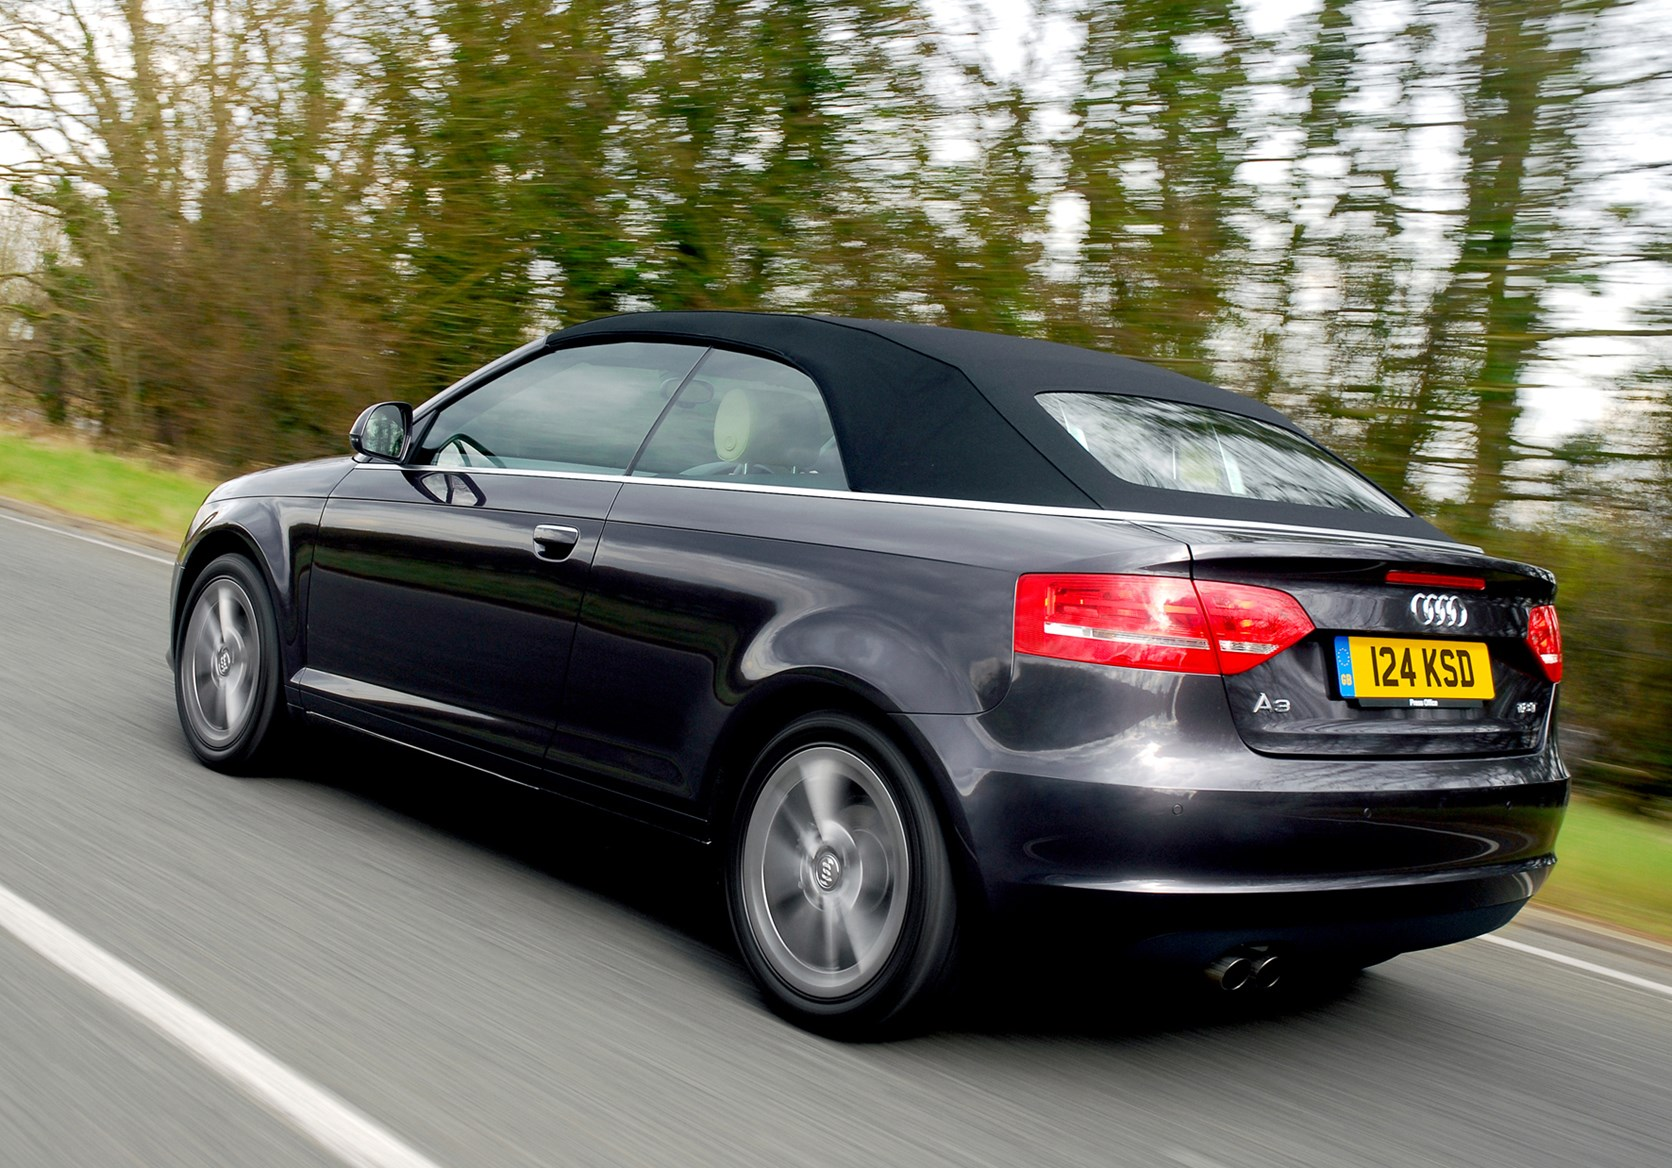 juni used file convertible tdi cabriolet audi frontansicht wiki wuppertal